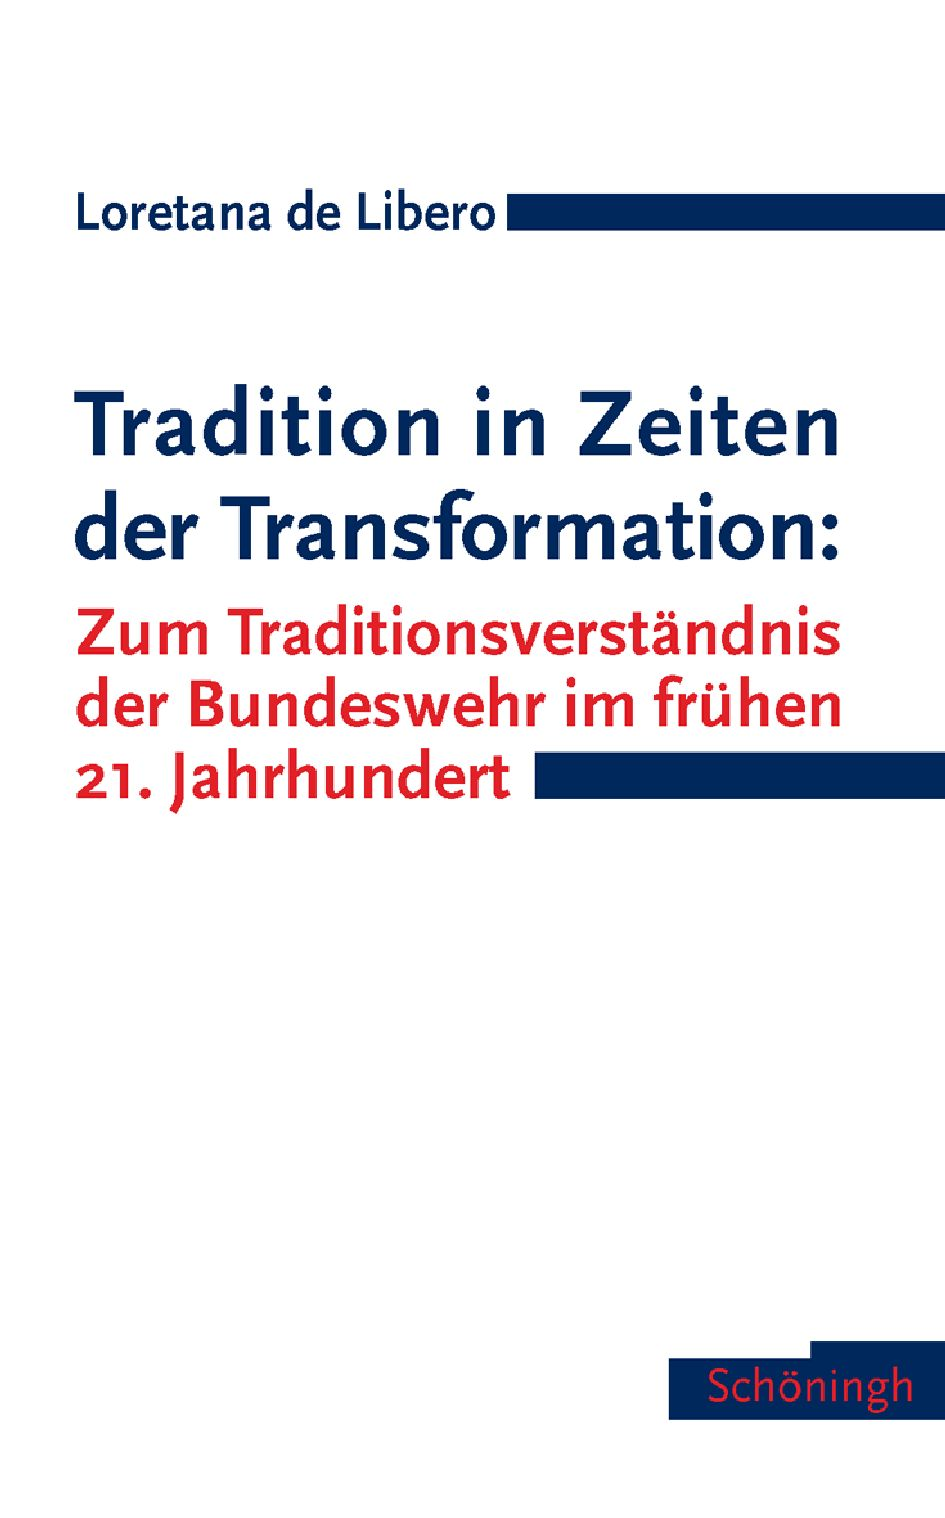 Tradition in Zeiten der Transformation | Loretana de Libero |  9783506763150